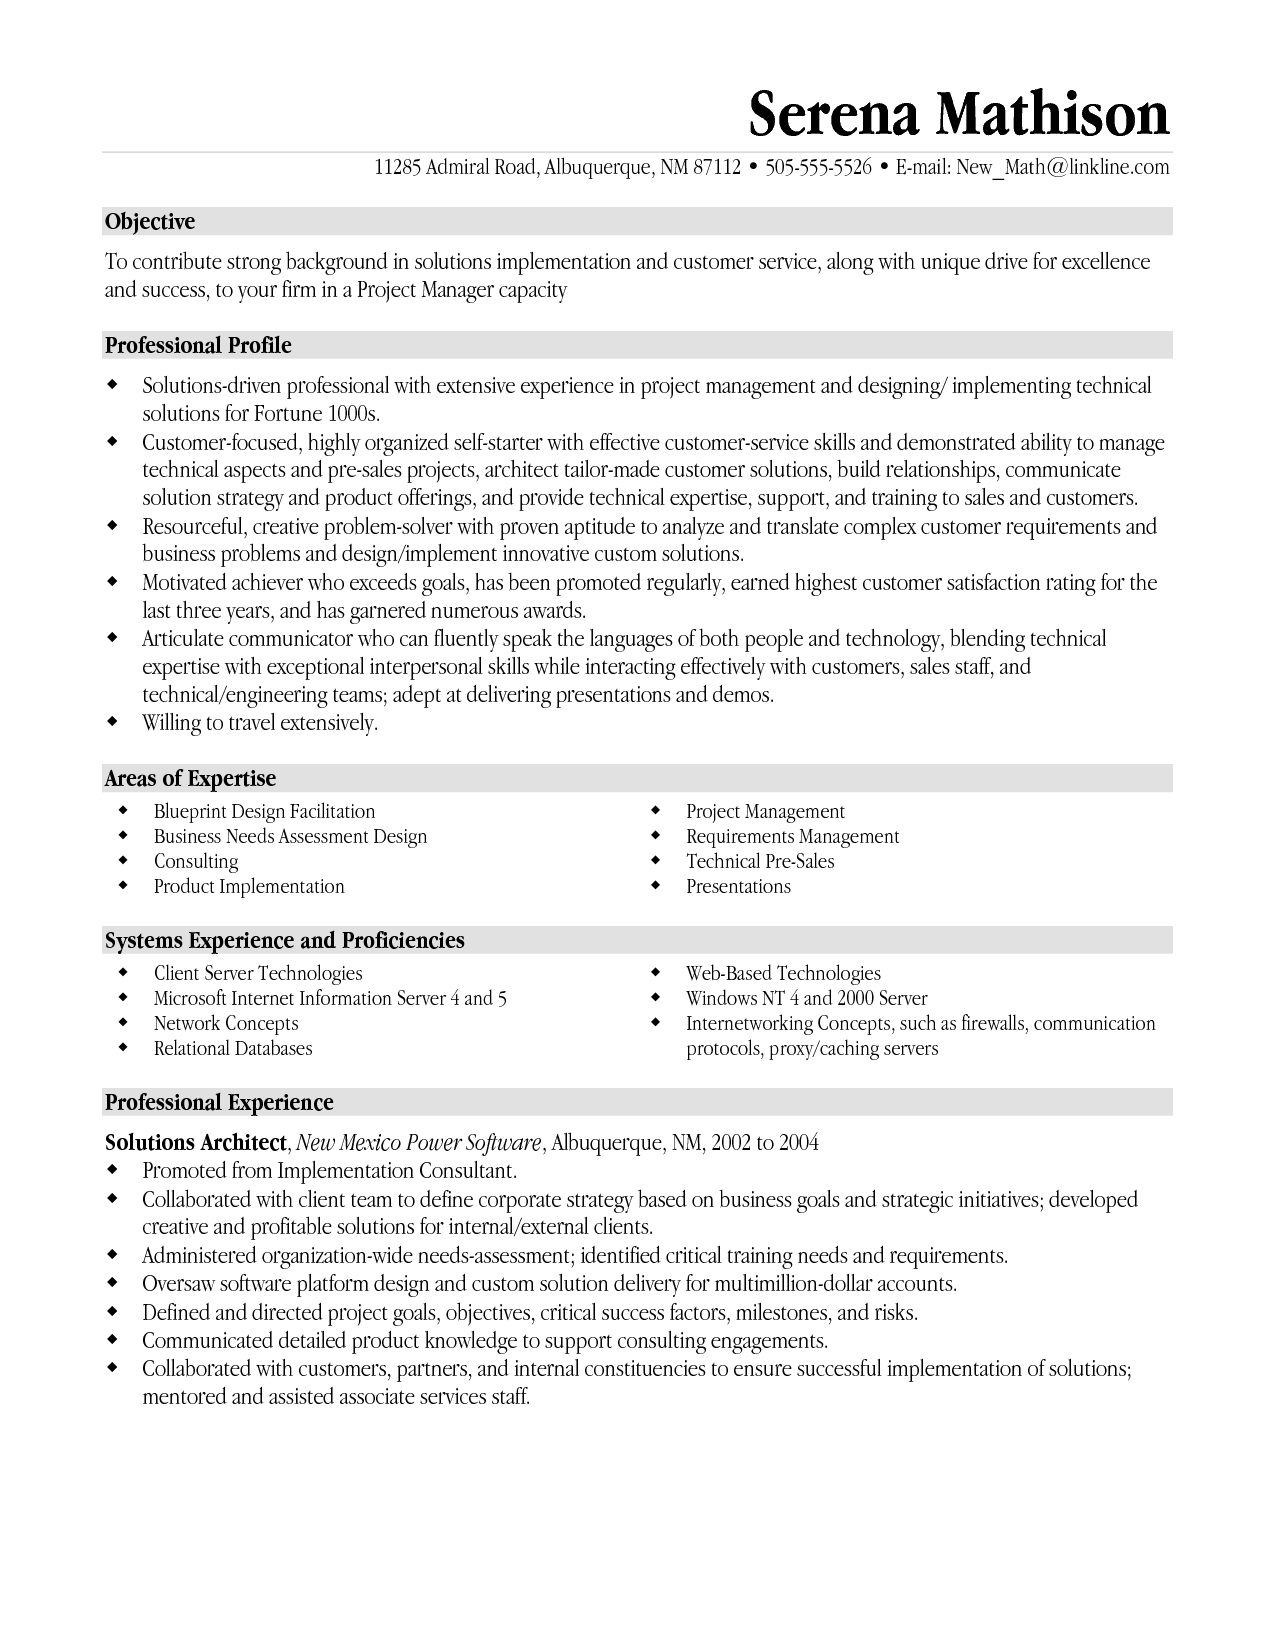 Manager Resume Resume Templates Project Manager  Project Management Resume